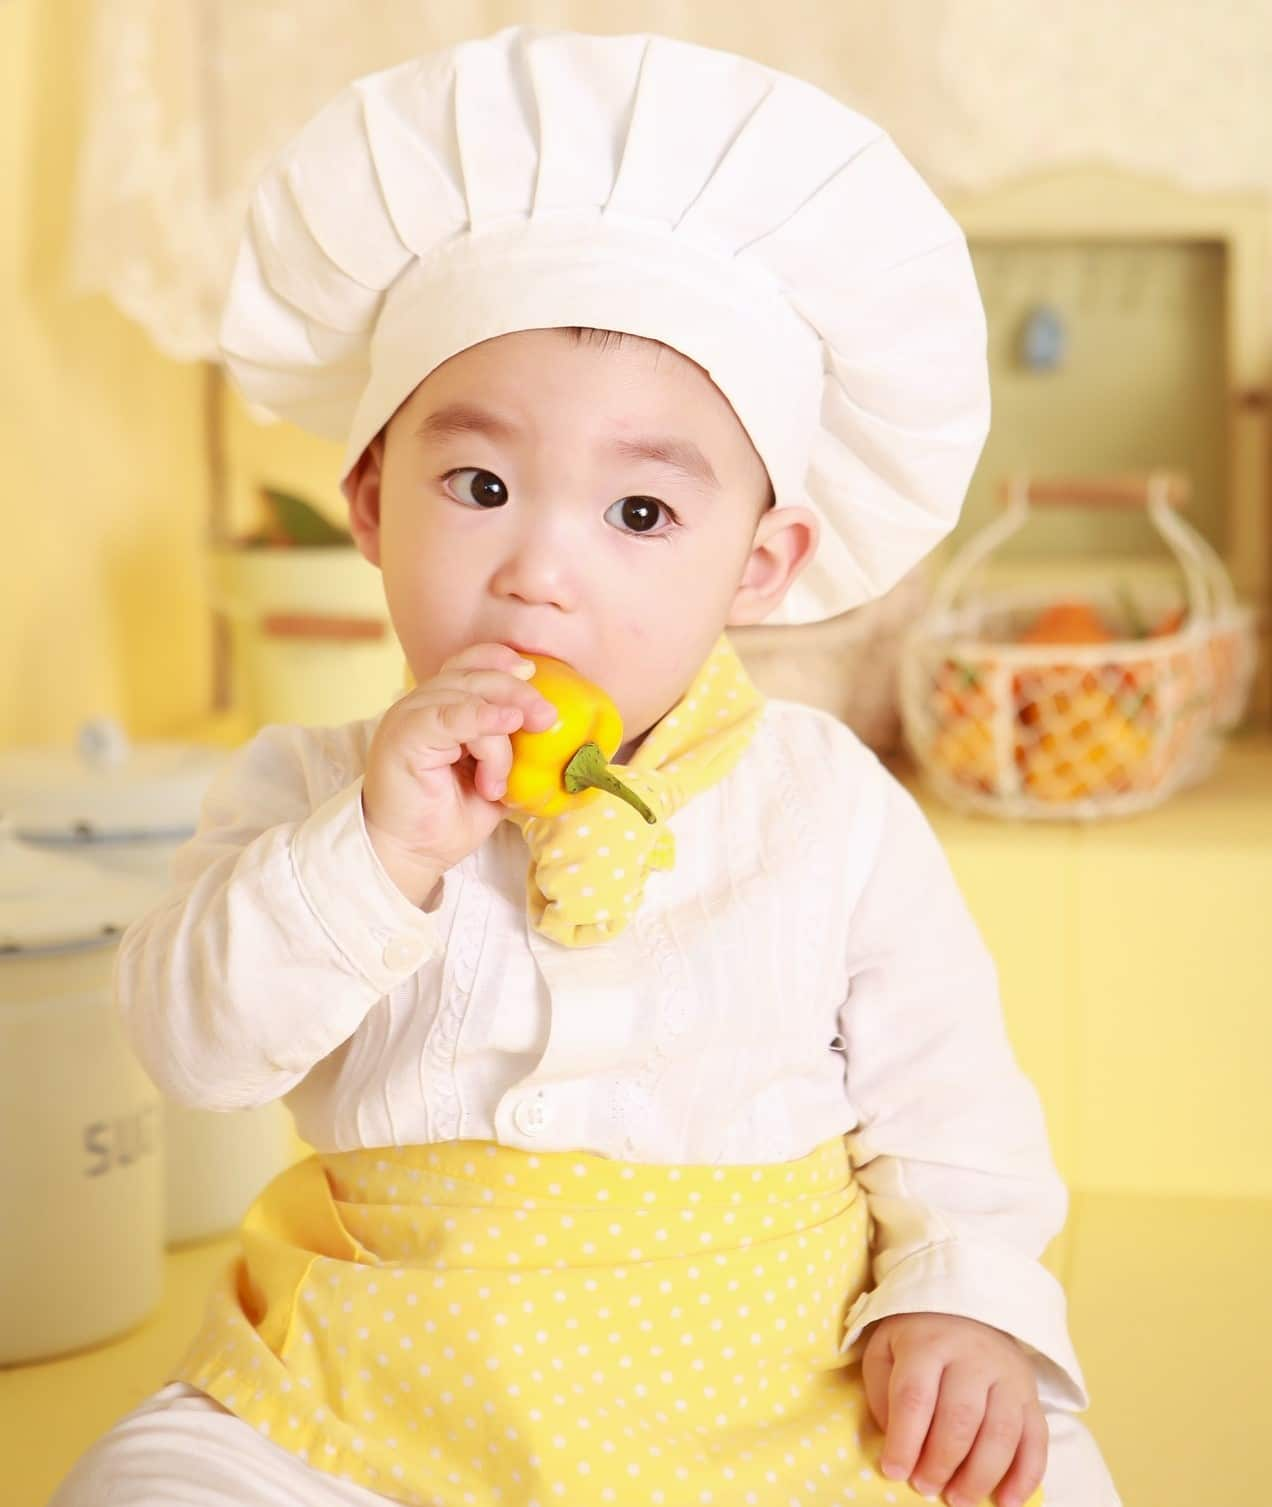 Baby food brand completed funding - food tech news in Asia